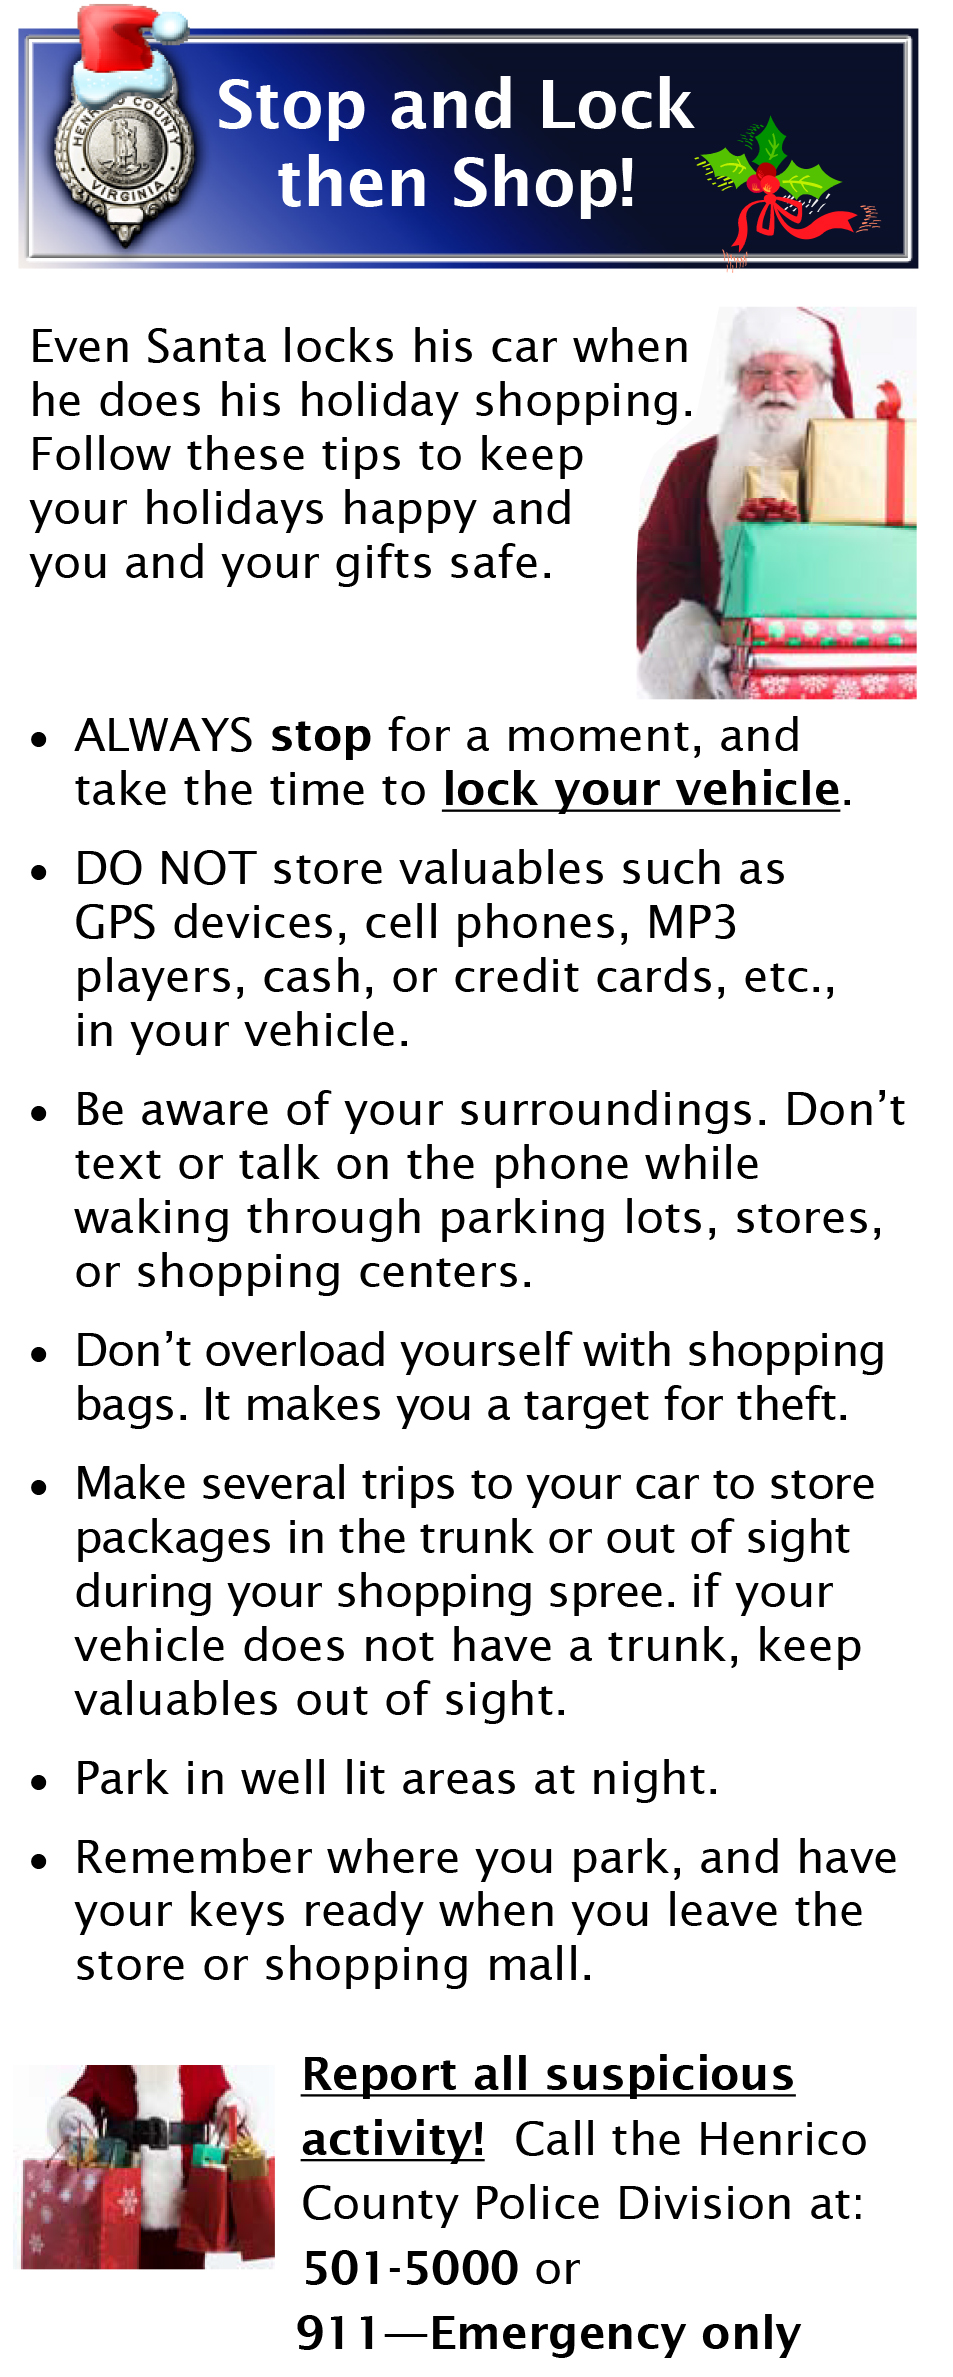 Stop and Lock then Shop